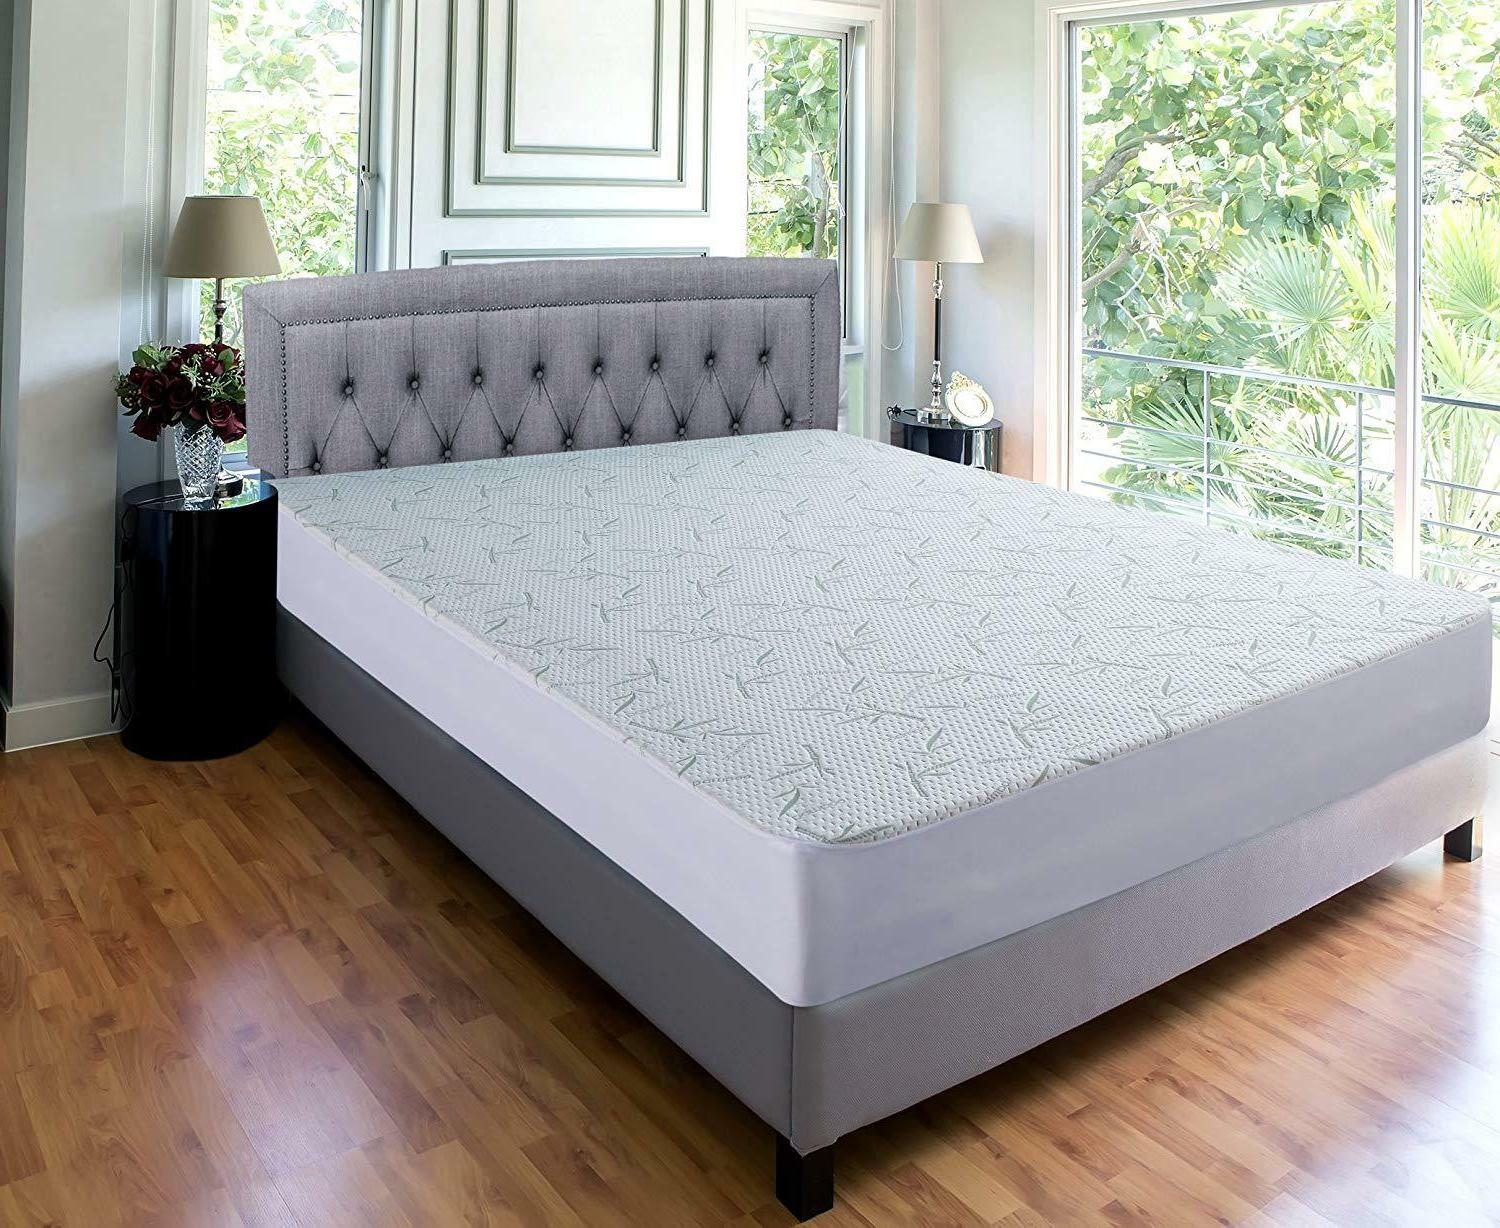 Waterproof Bamboo Mattress Fitted Bedding